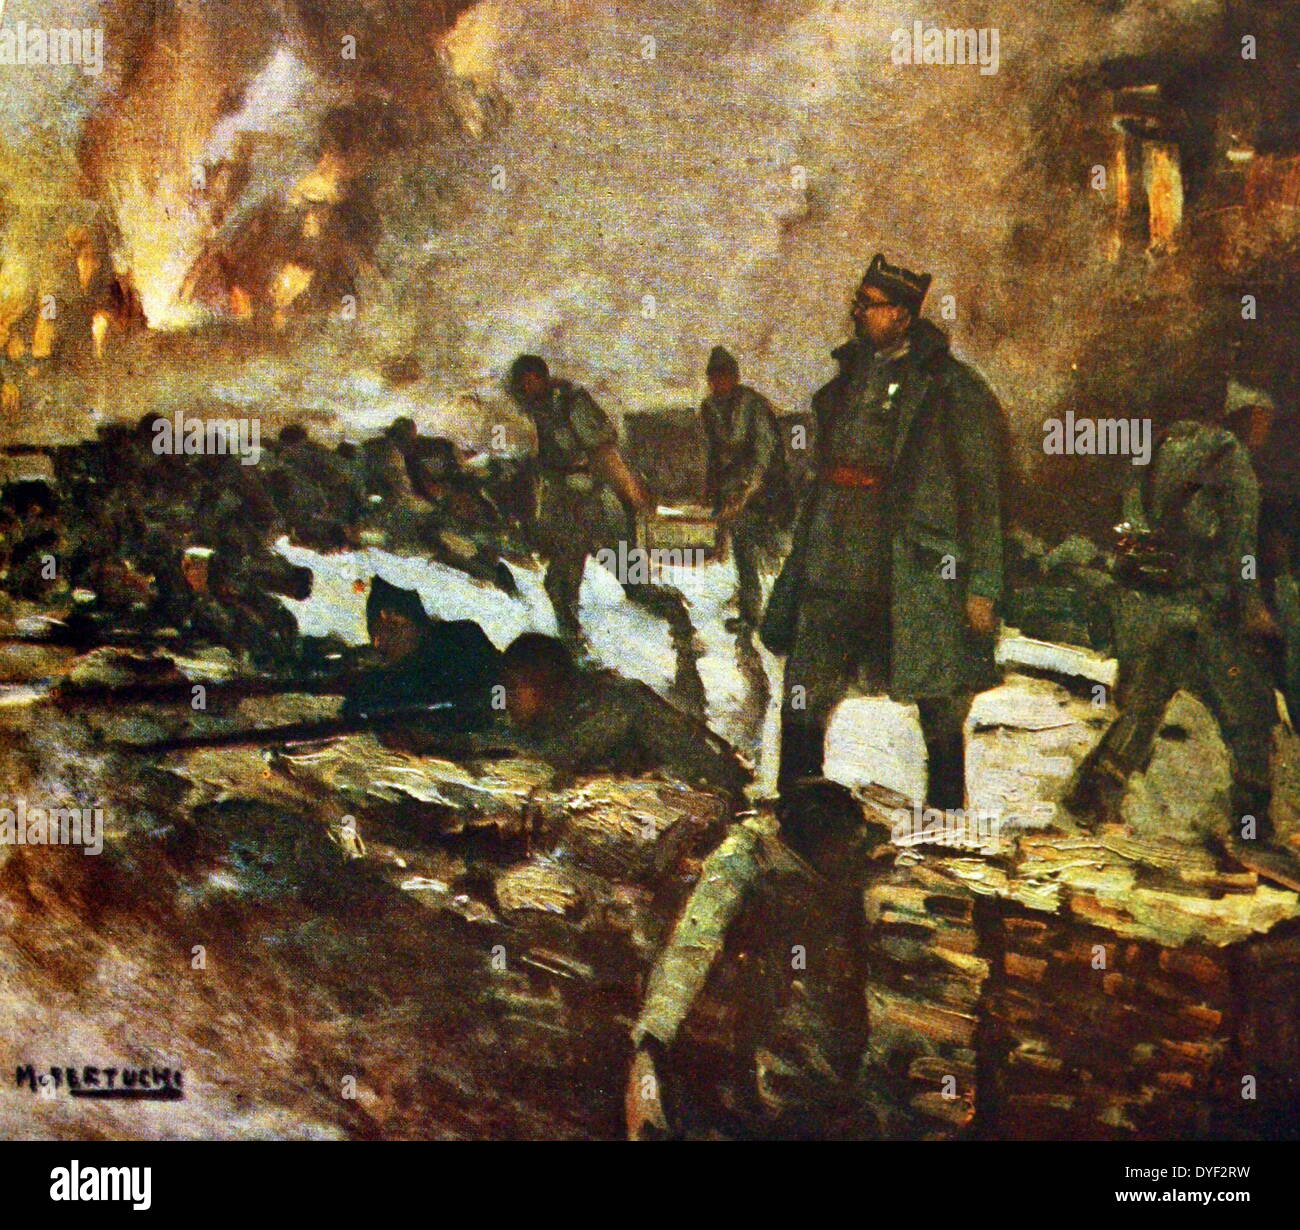 Painting of the battlefield, Showing soldiers in trenches surrounded by fire and explosions. - Stock Image